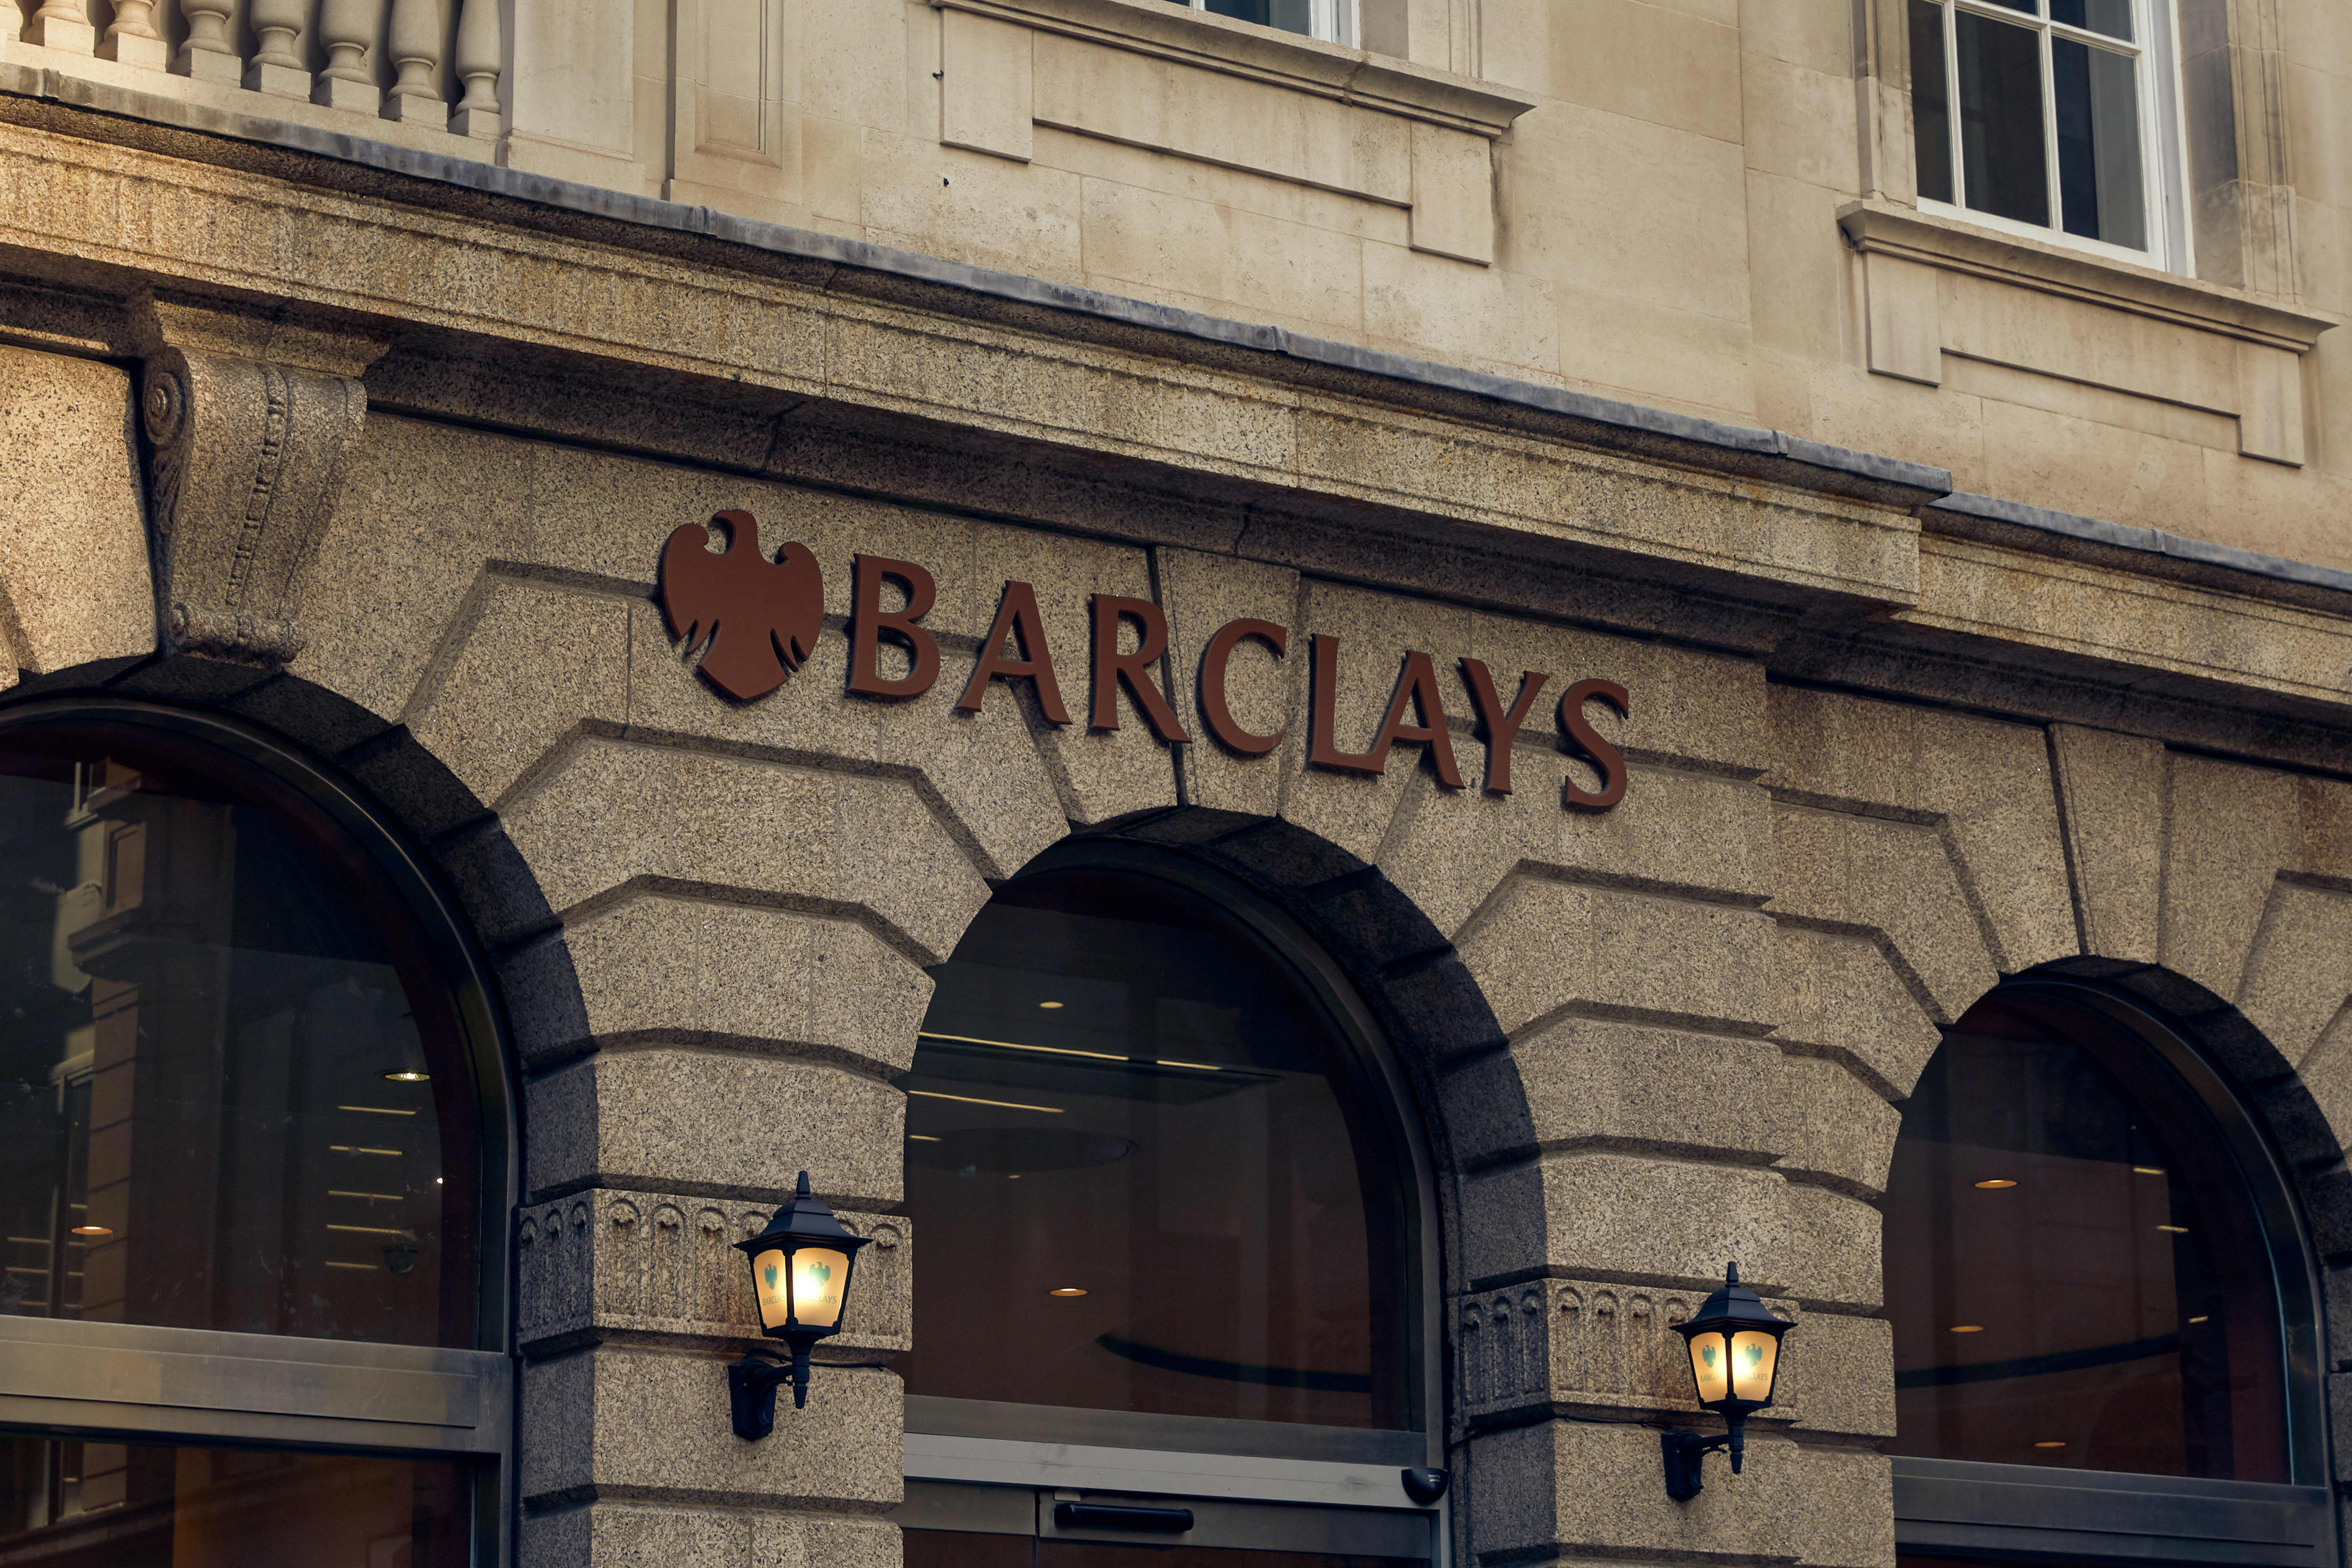 Barclays beats expectations in the first quarter as loan impairment charges slide